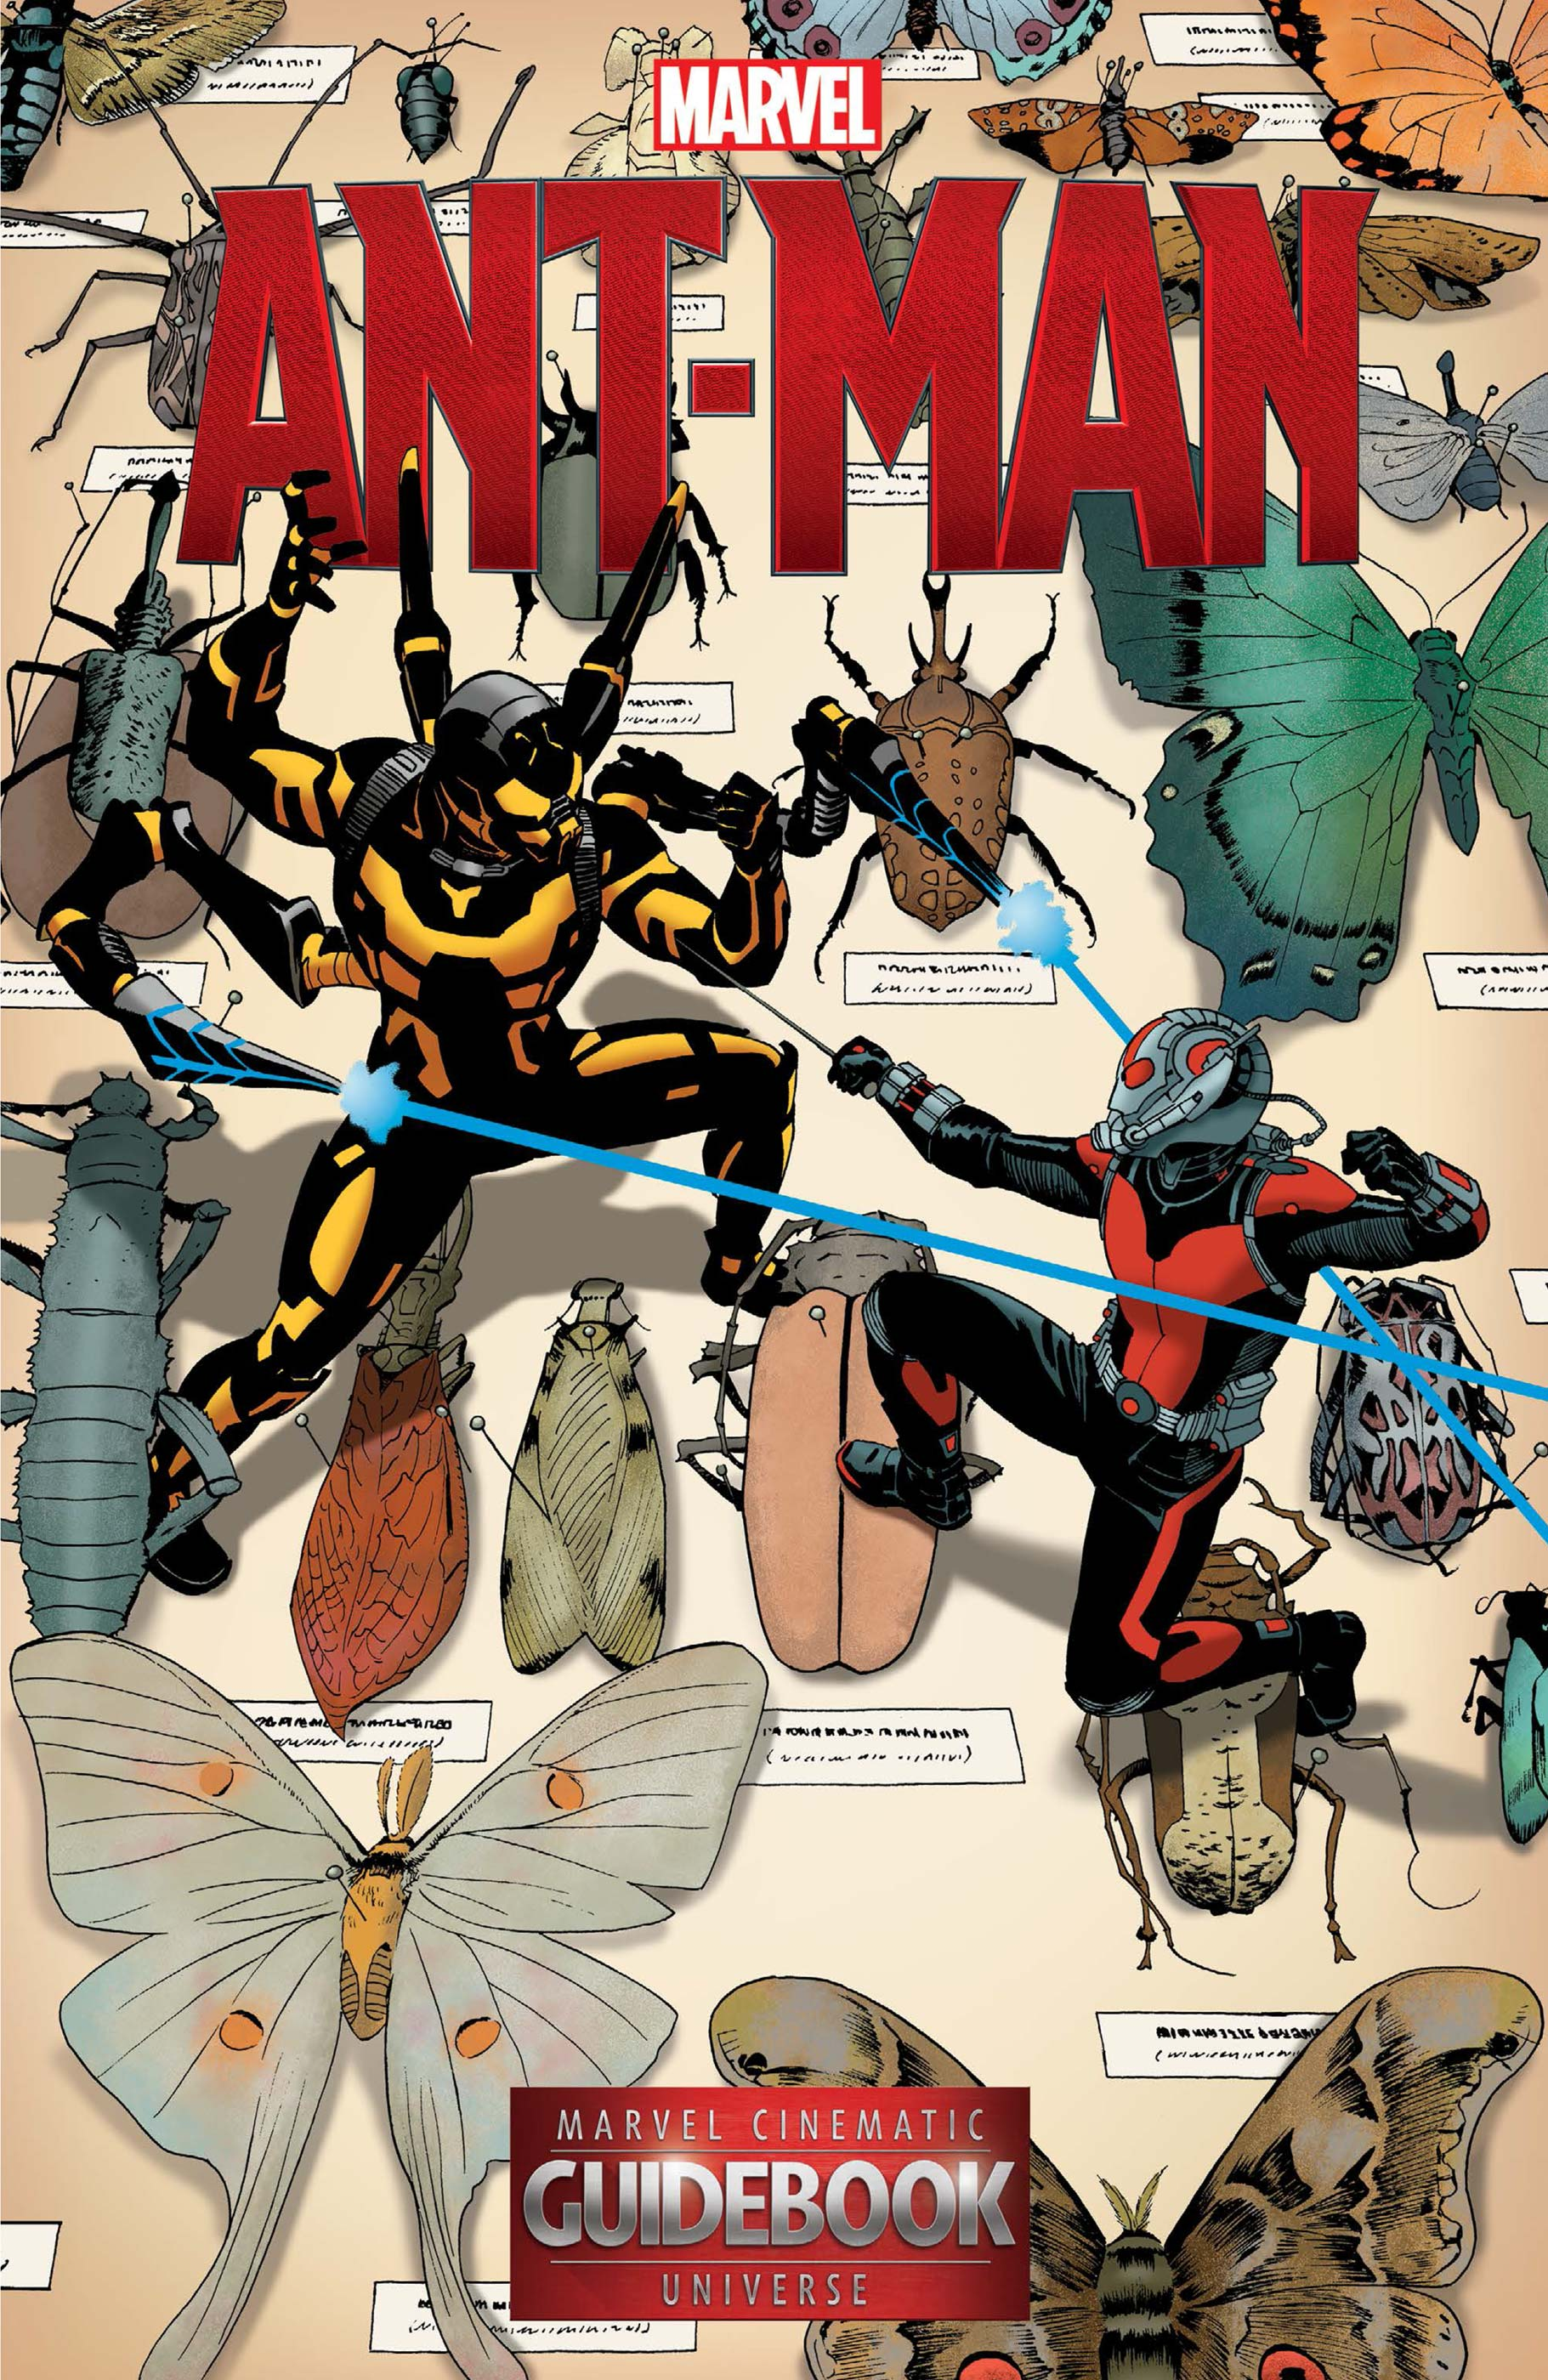 Guidebook to The Marvel Cinematic Universe - Marvel's Ant-Man (2016) #1